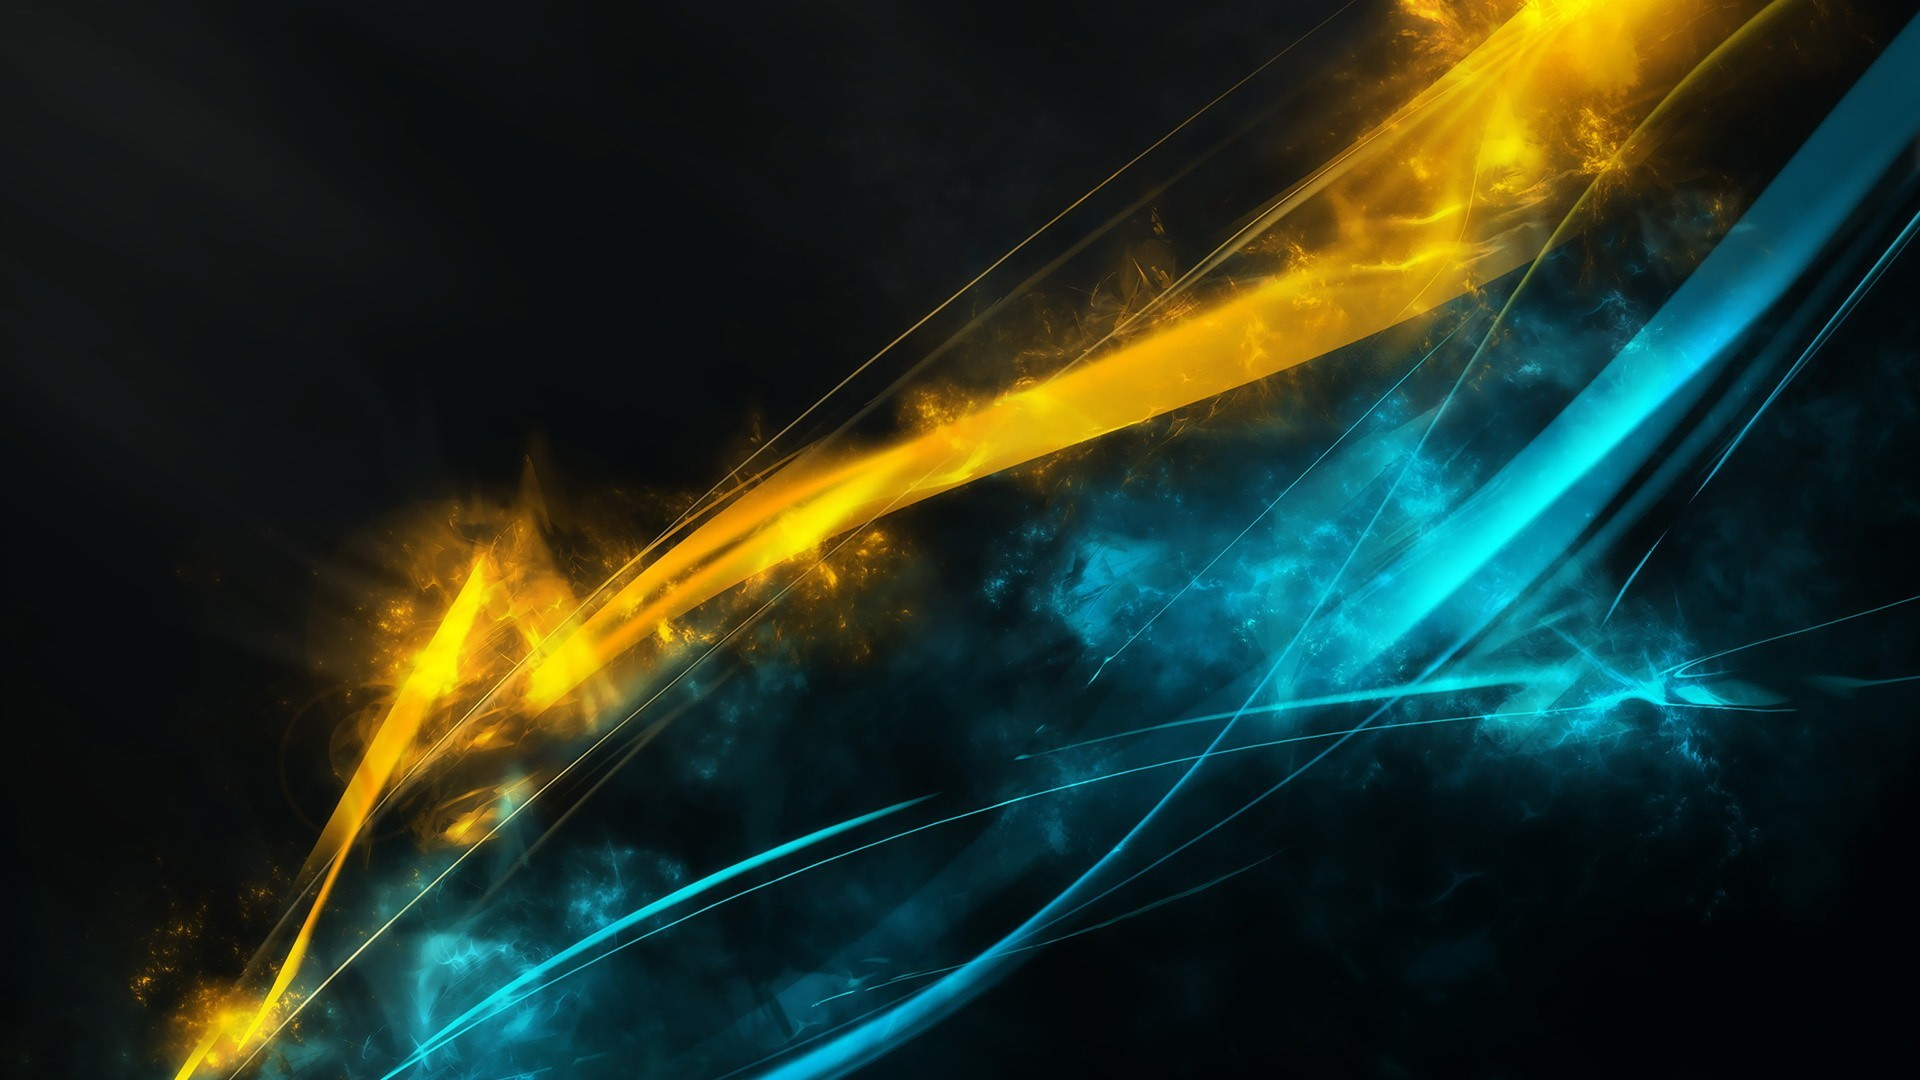 1920x1080 HM.415 Gallery: Blue Yellow Abstract, 239.06 Kb